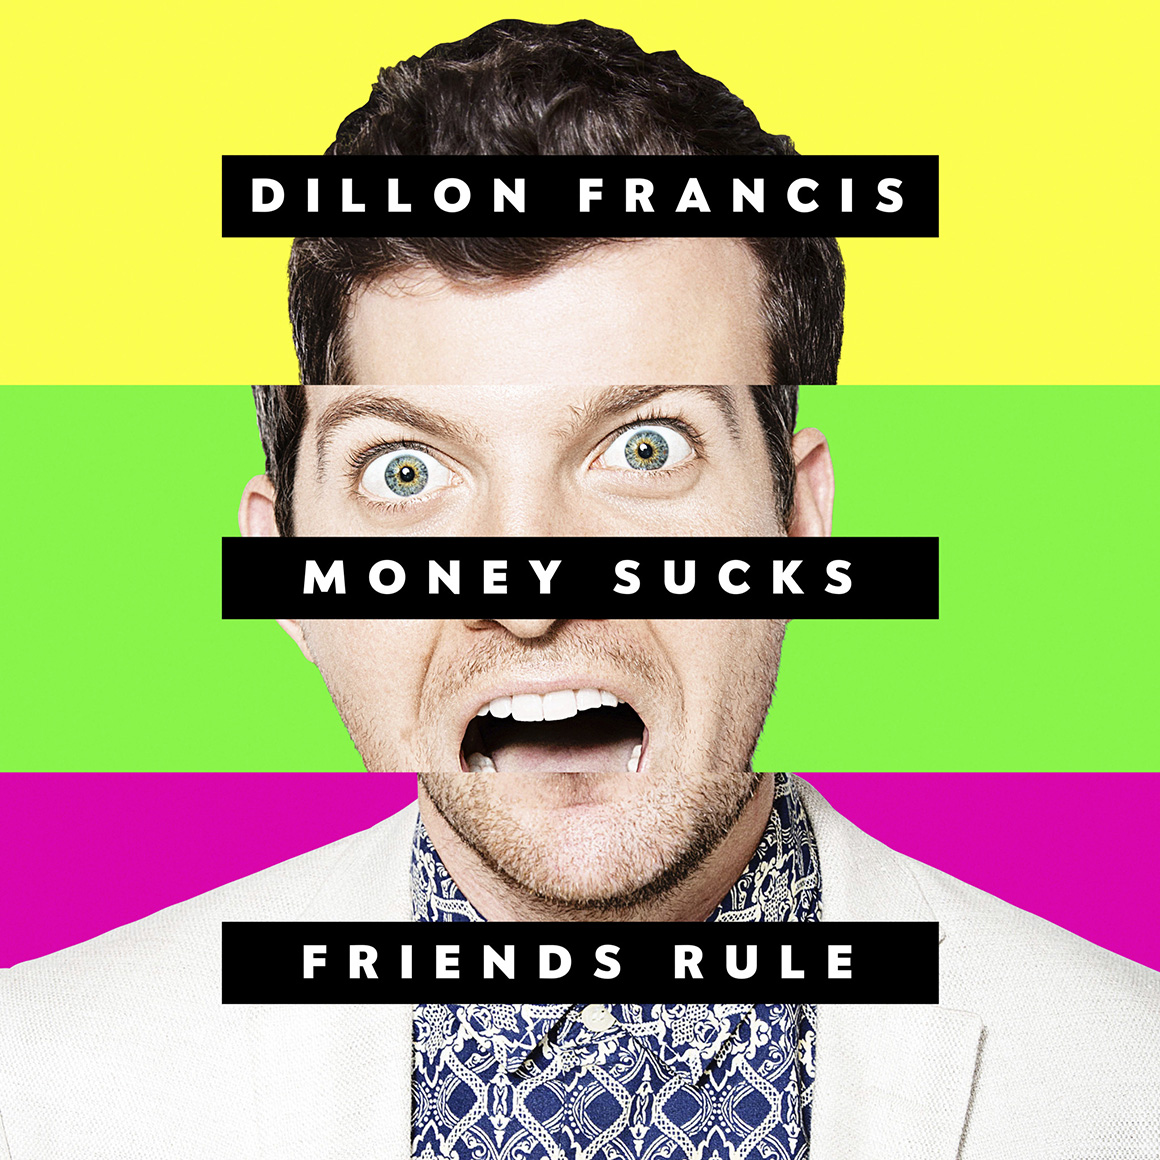 dillon money sucks